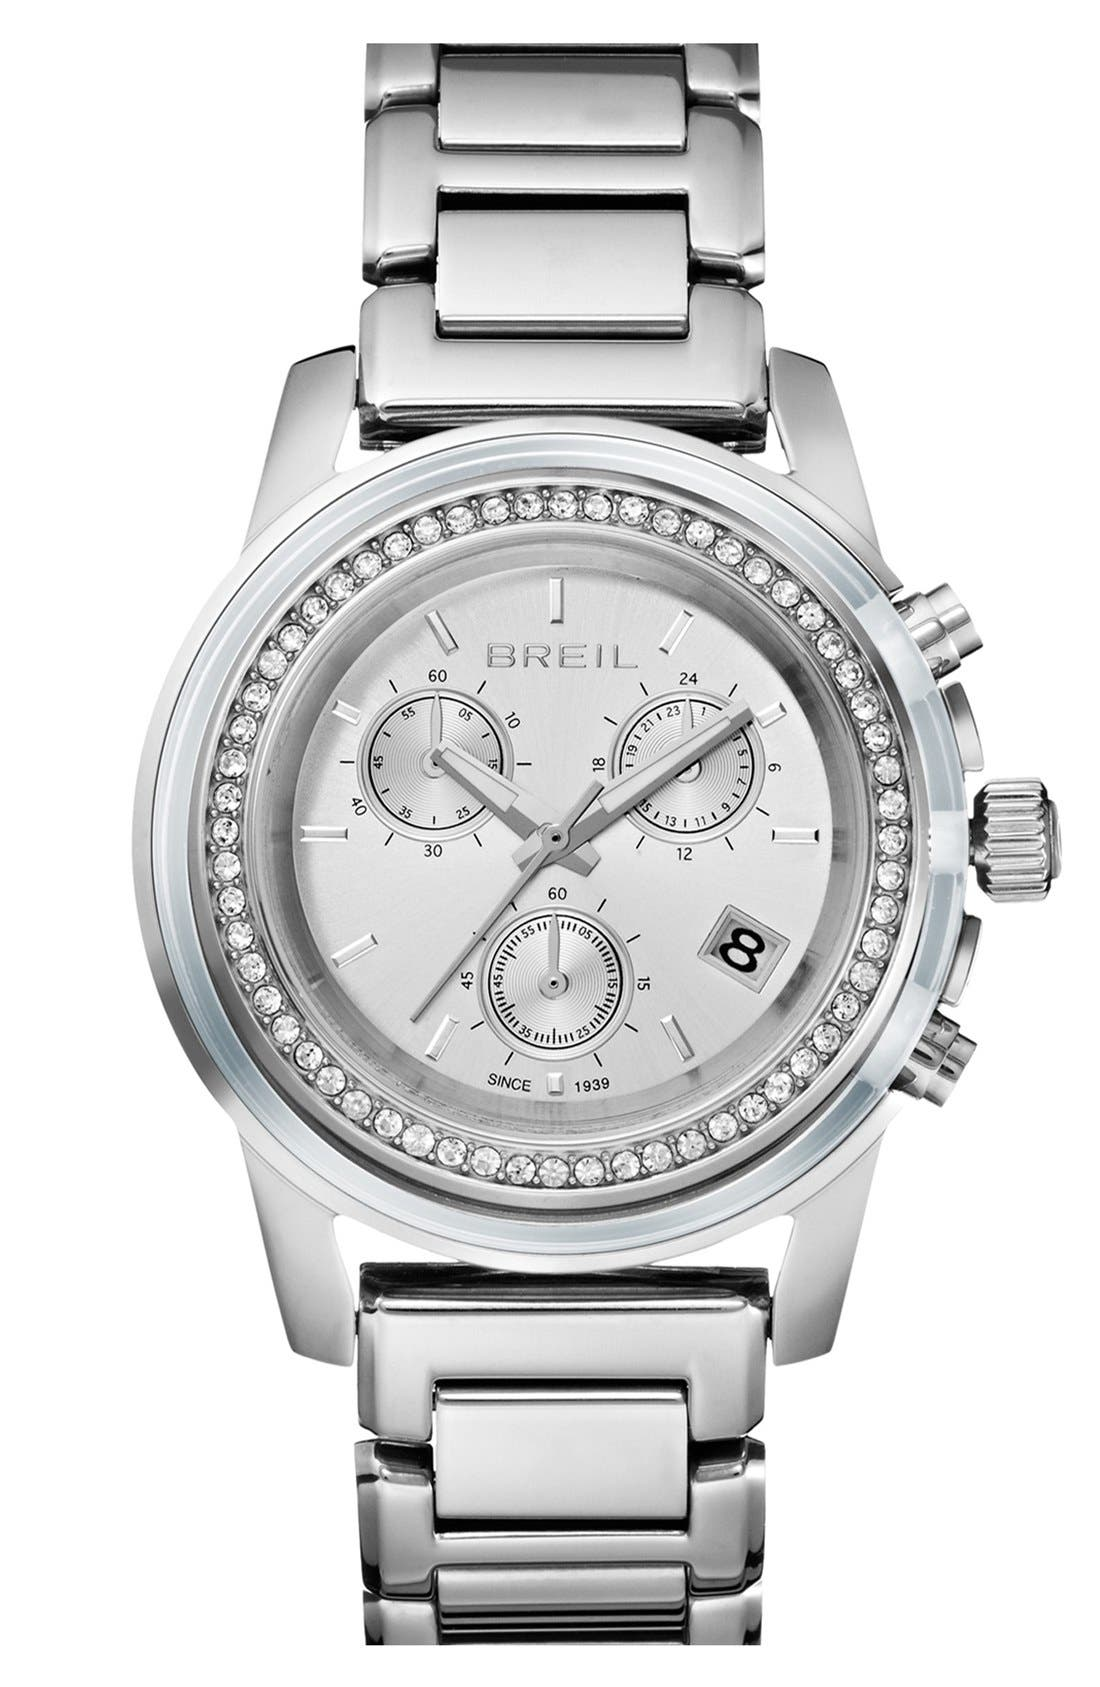 Alternate Image 1 Selected - Breil 'Orchestra' Crystal Bezel Chronograph Bracelet Watch, 37mm